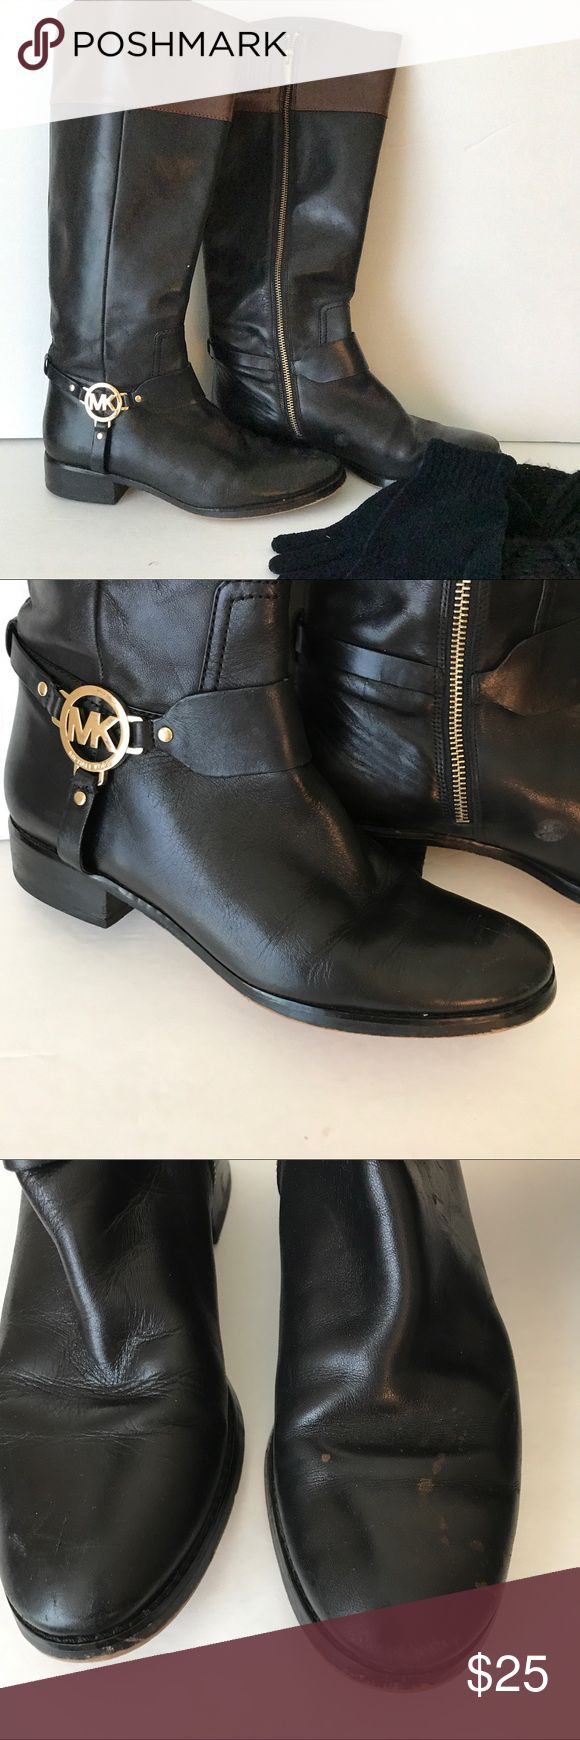 Striking black and brown MK boots, 7 1/2 These Striking black and brown MK boots are a wardrobe essential.  If you don't have a pair, you won't find them anywhere less expensive and you need them!  Preowned but in excellent condition with only slight wear on toes.  Size7 1/2 .  Proceeds from this closet support Project Hope, a ministry to homeless single moms. Michael Kors Shoes